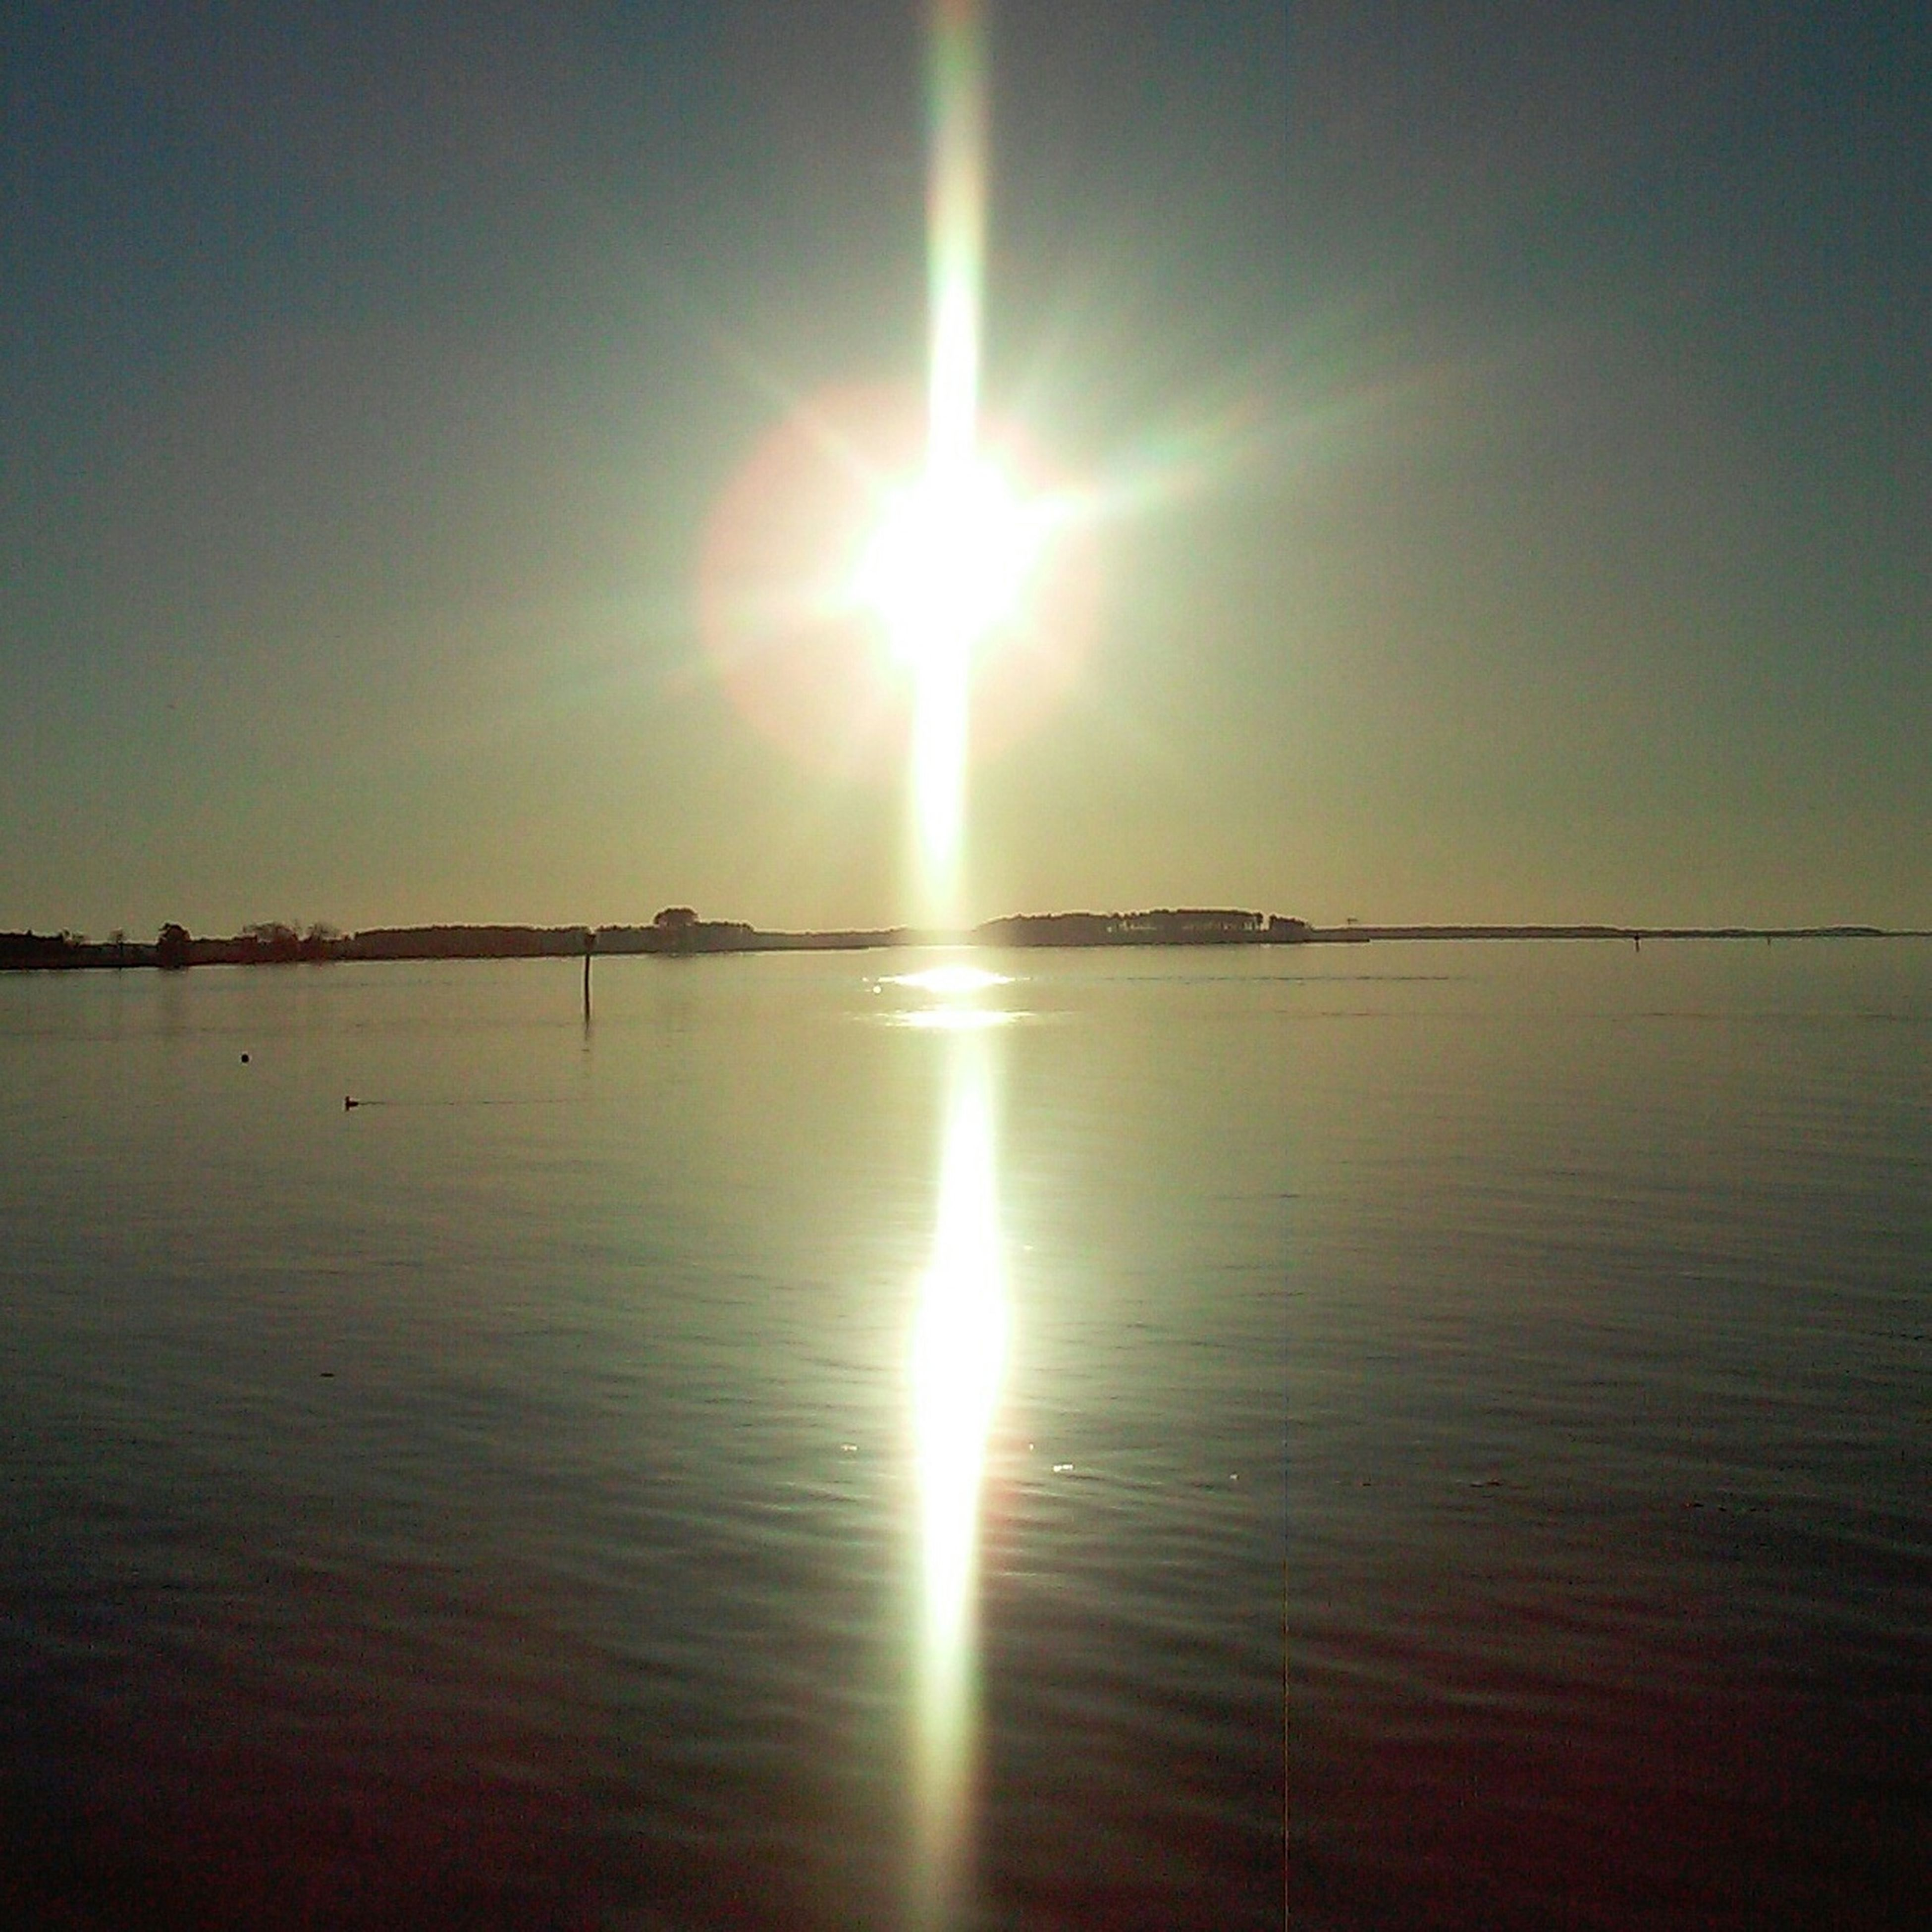 sun, water, reflection, tranquil scene, scenics, tranquility, sea, sunset, beauty in nature, sunlight, sunbeam, horizon over water, lens flare, nature, idyllic, sky, waterfront, bright, rippled, calm